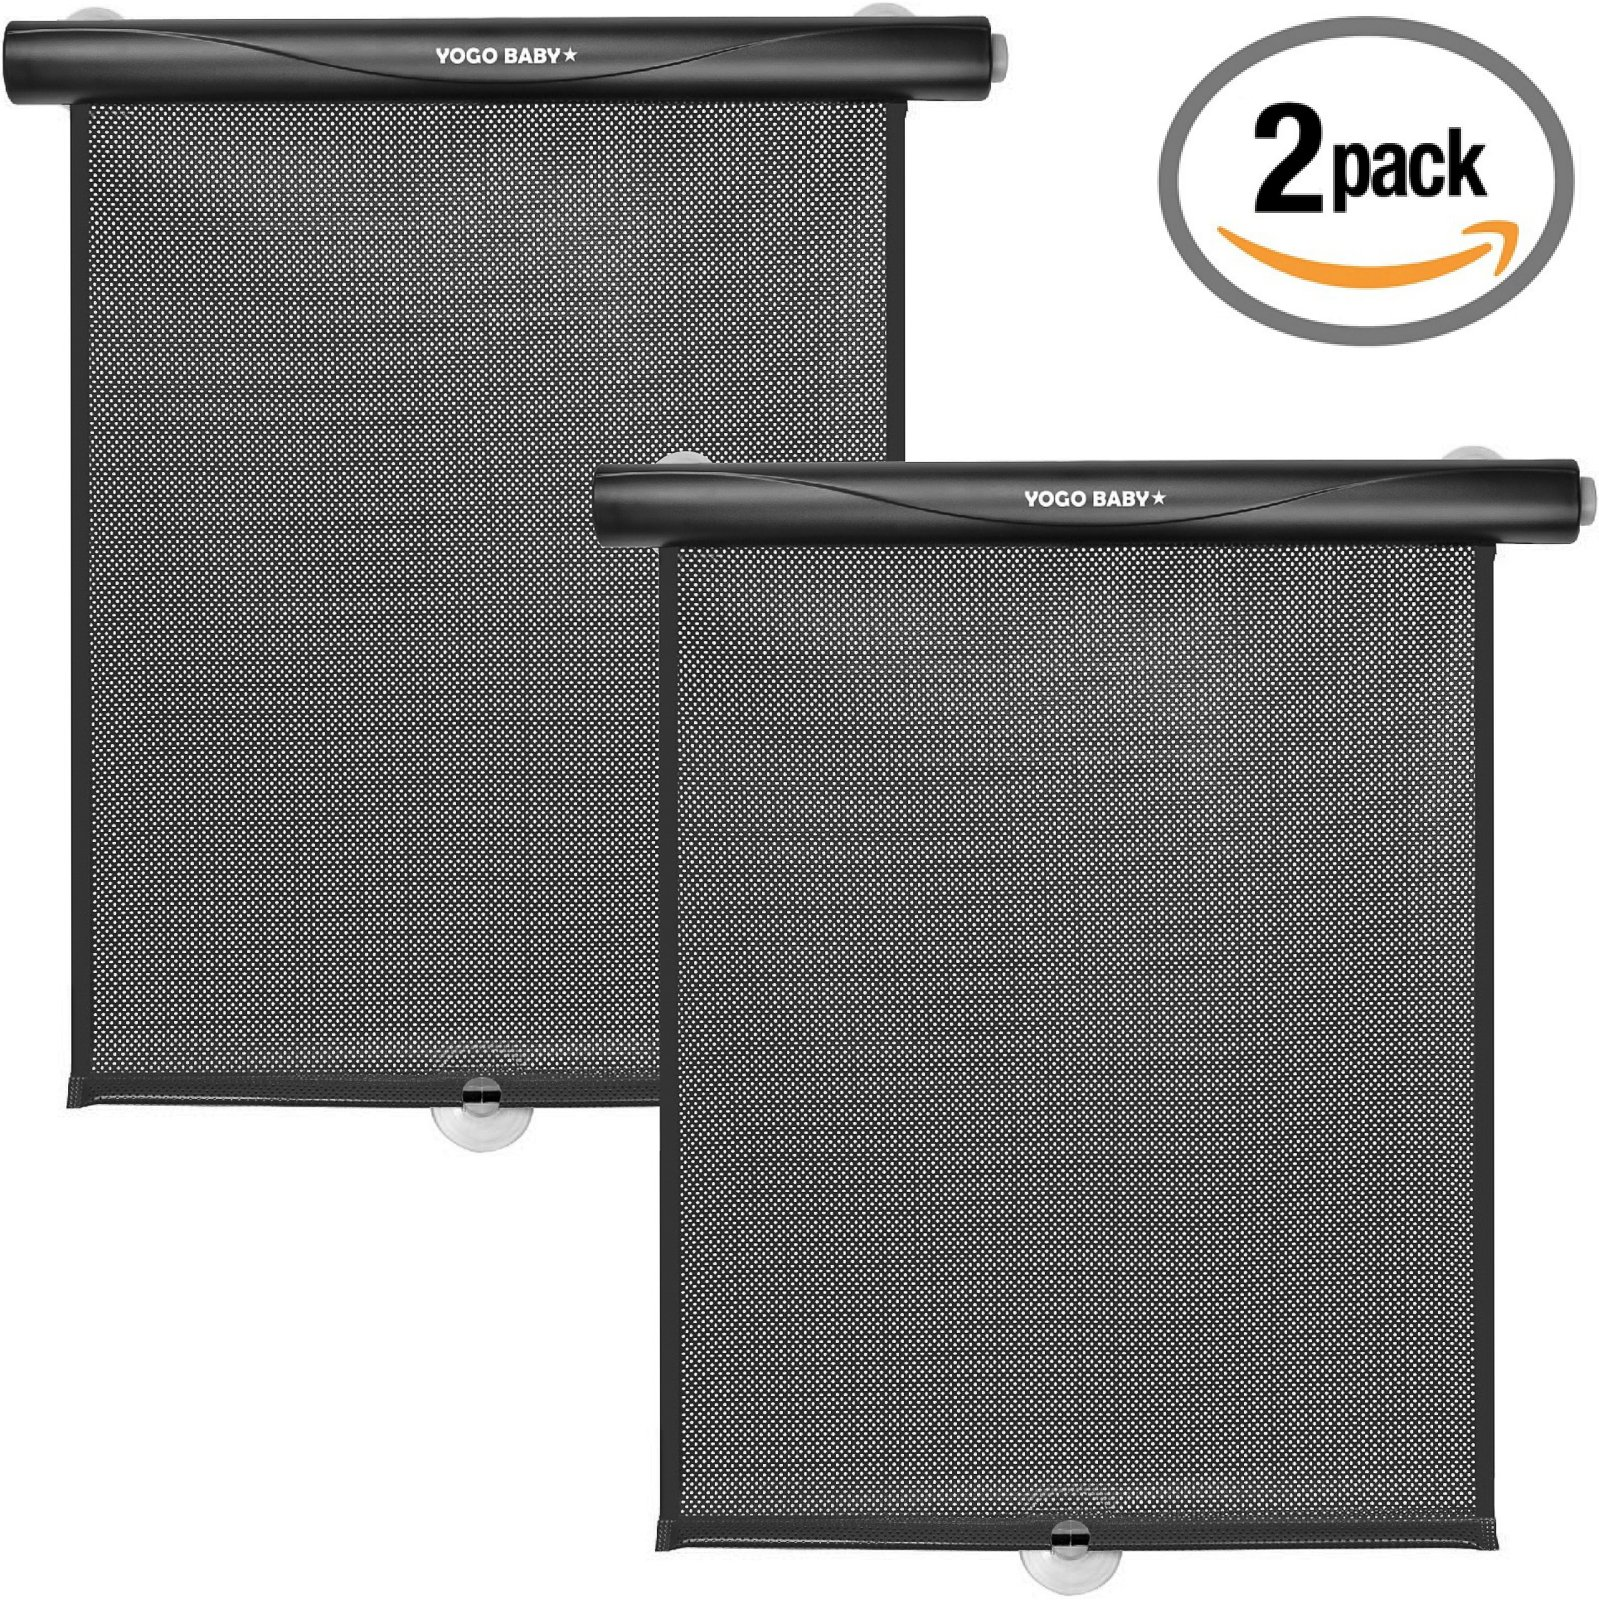 Car Roller Sunshade Deluxe Set of 2 Black Retractable Car Window Sunshade Blocks Sun and Keeps Car Cool for Babies and Kids